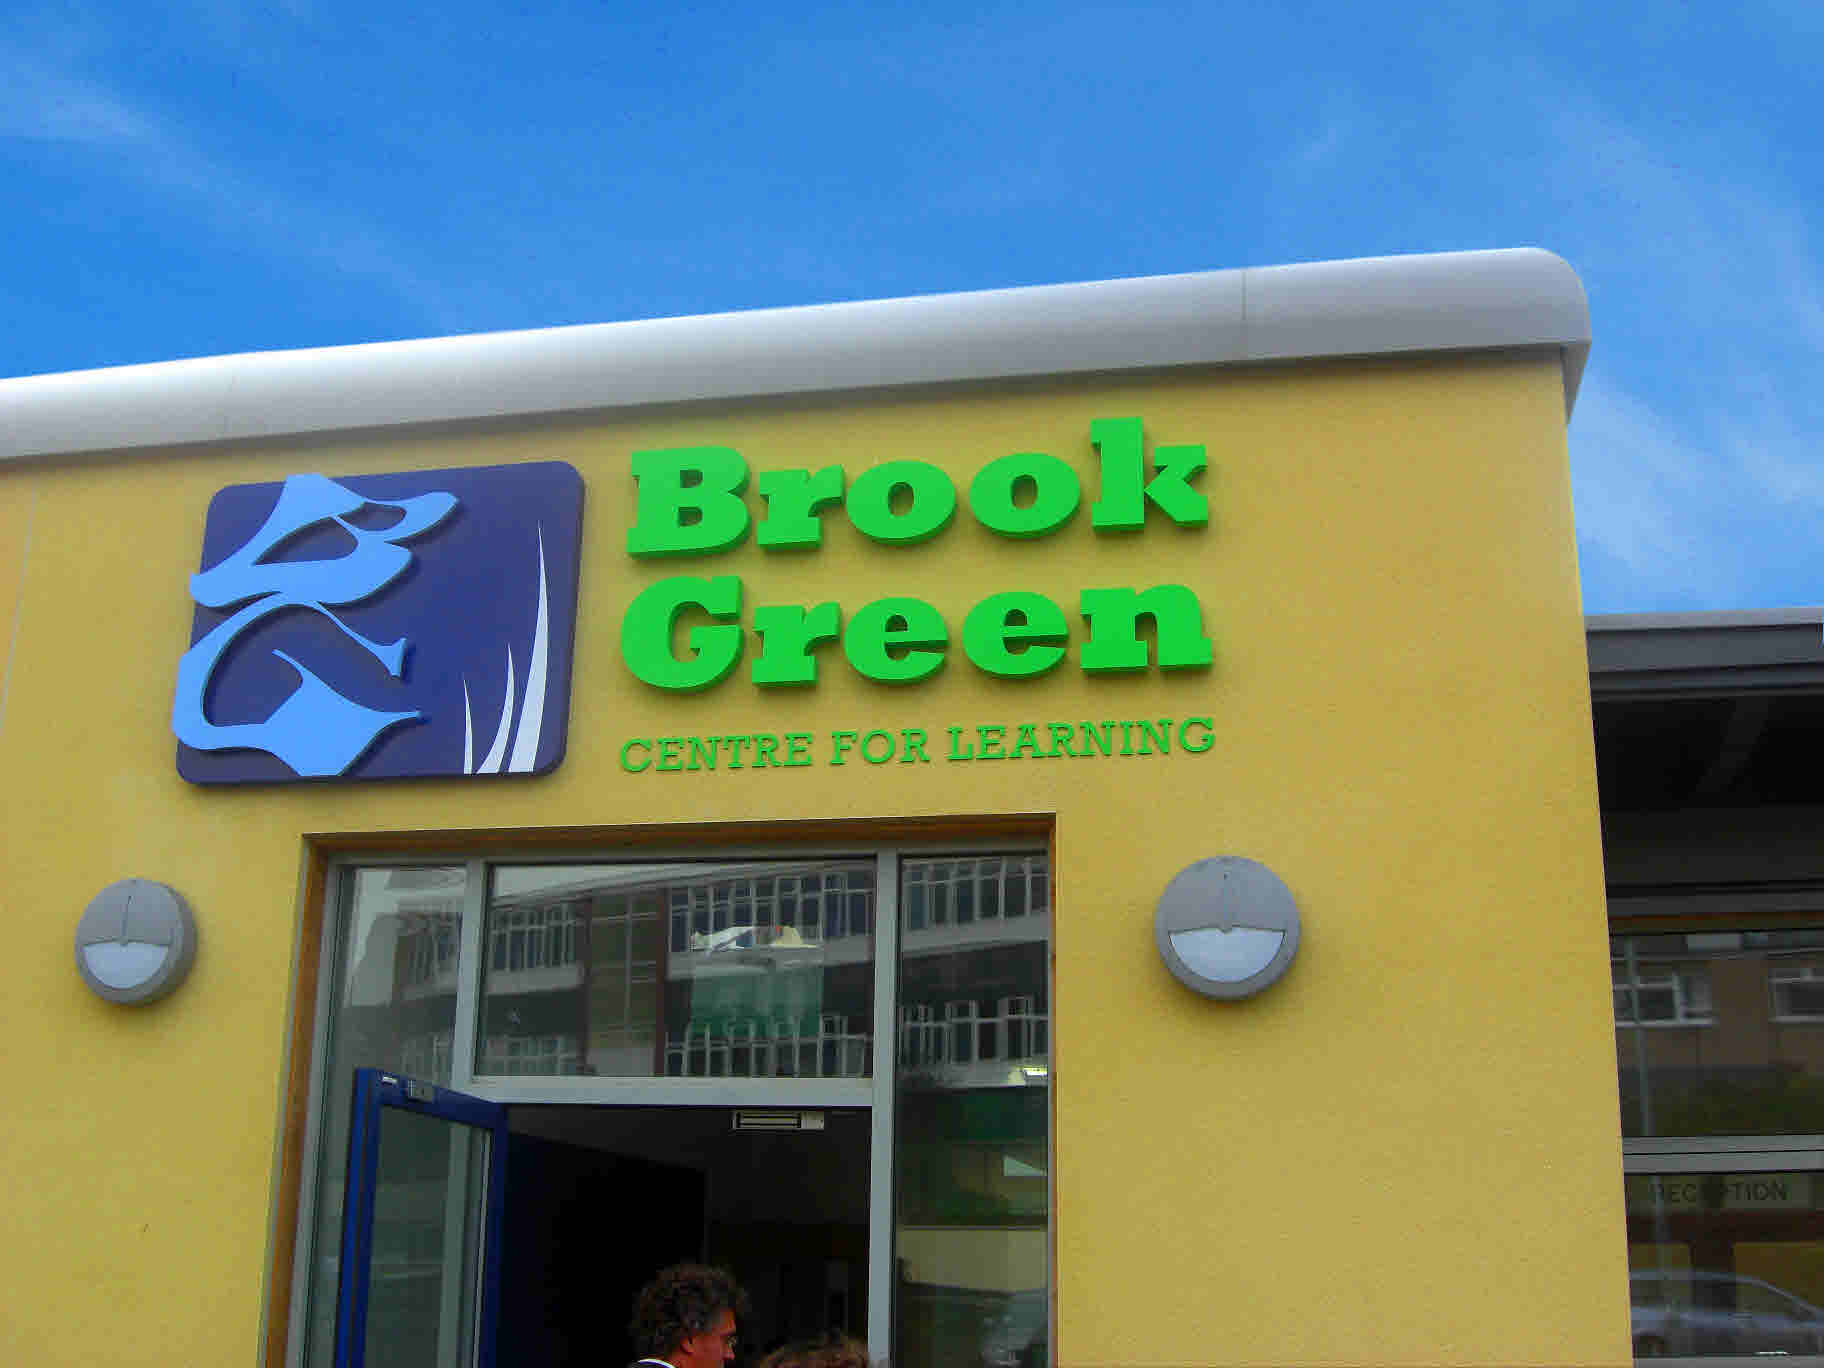 Plymouth school is one of greenest in UK using free renewable energy  #1AB138